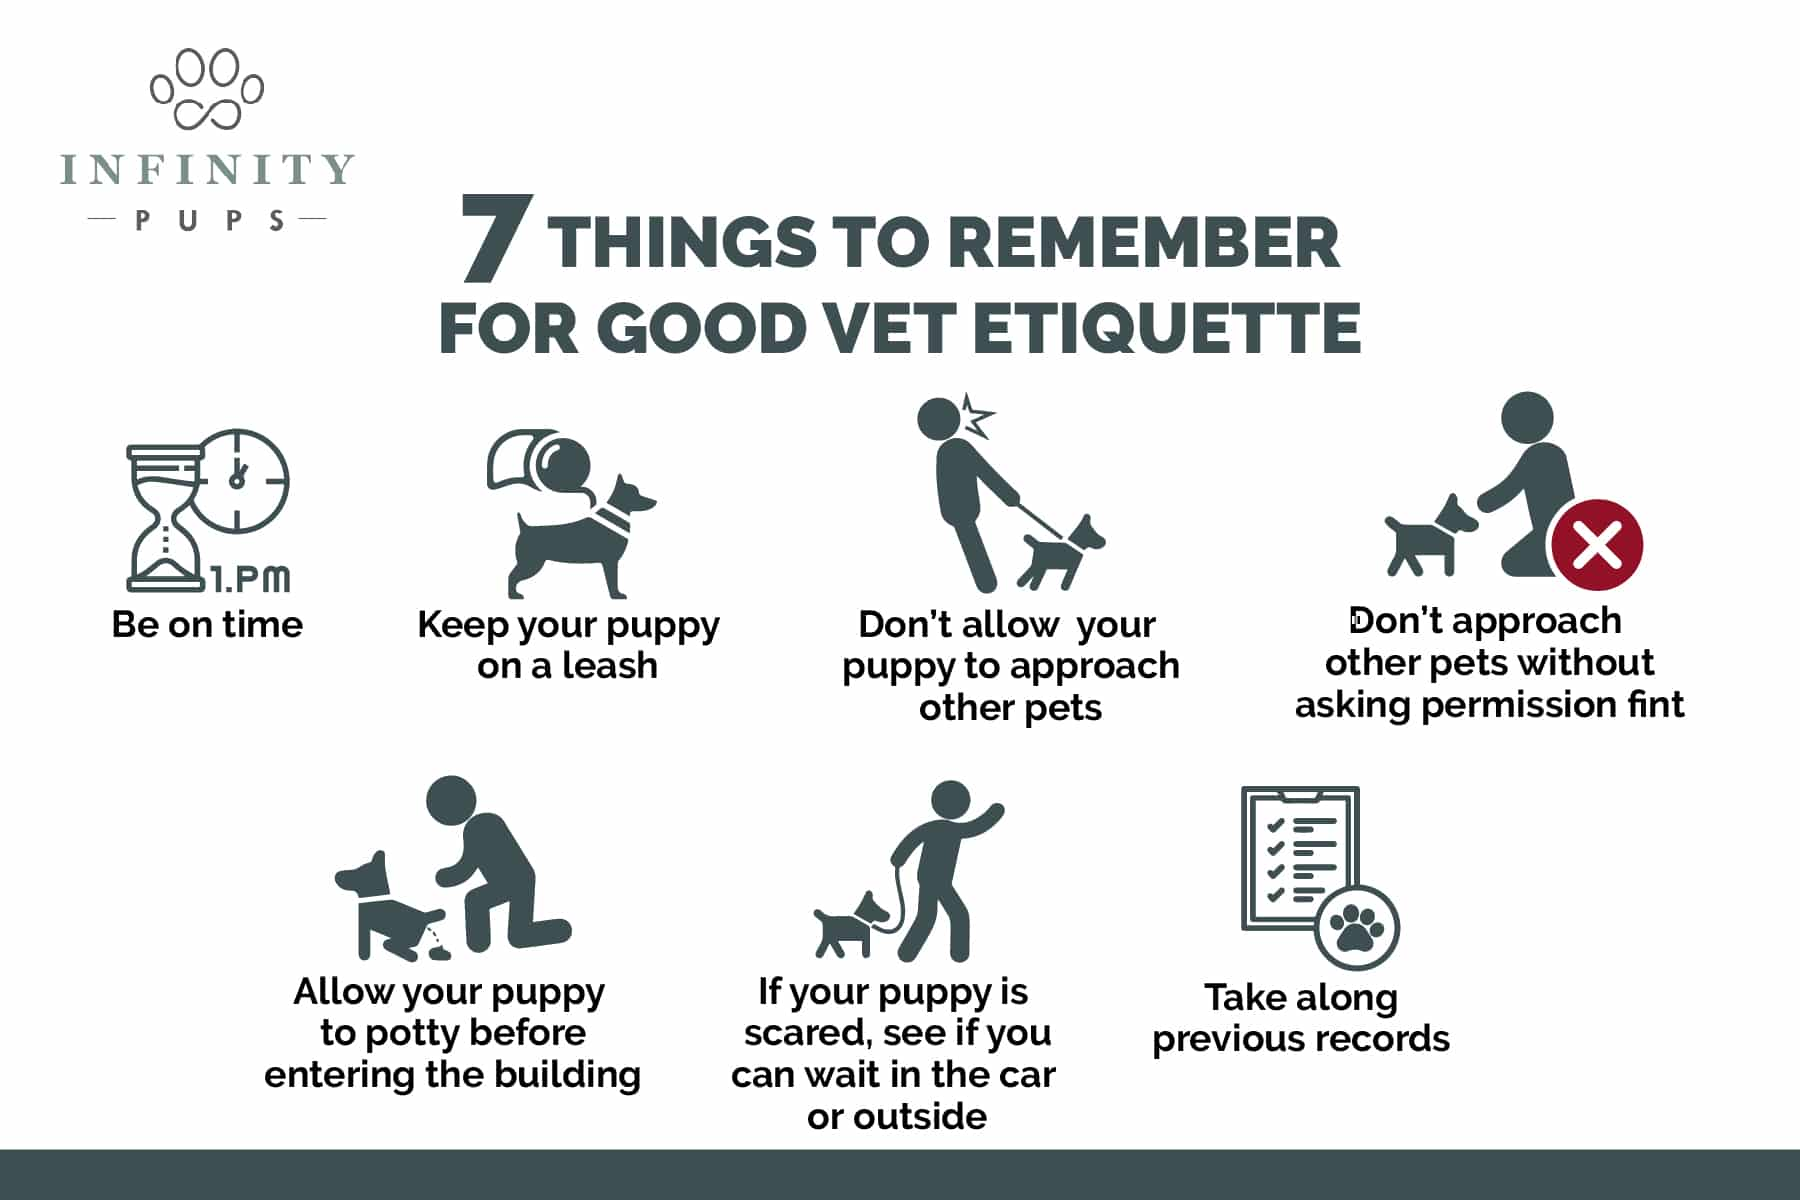 7 things for good vet etiquette